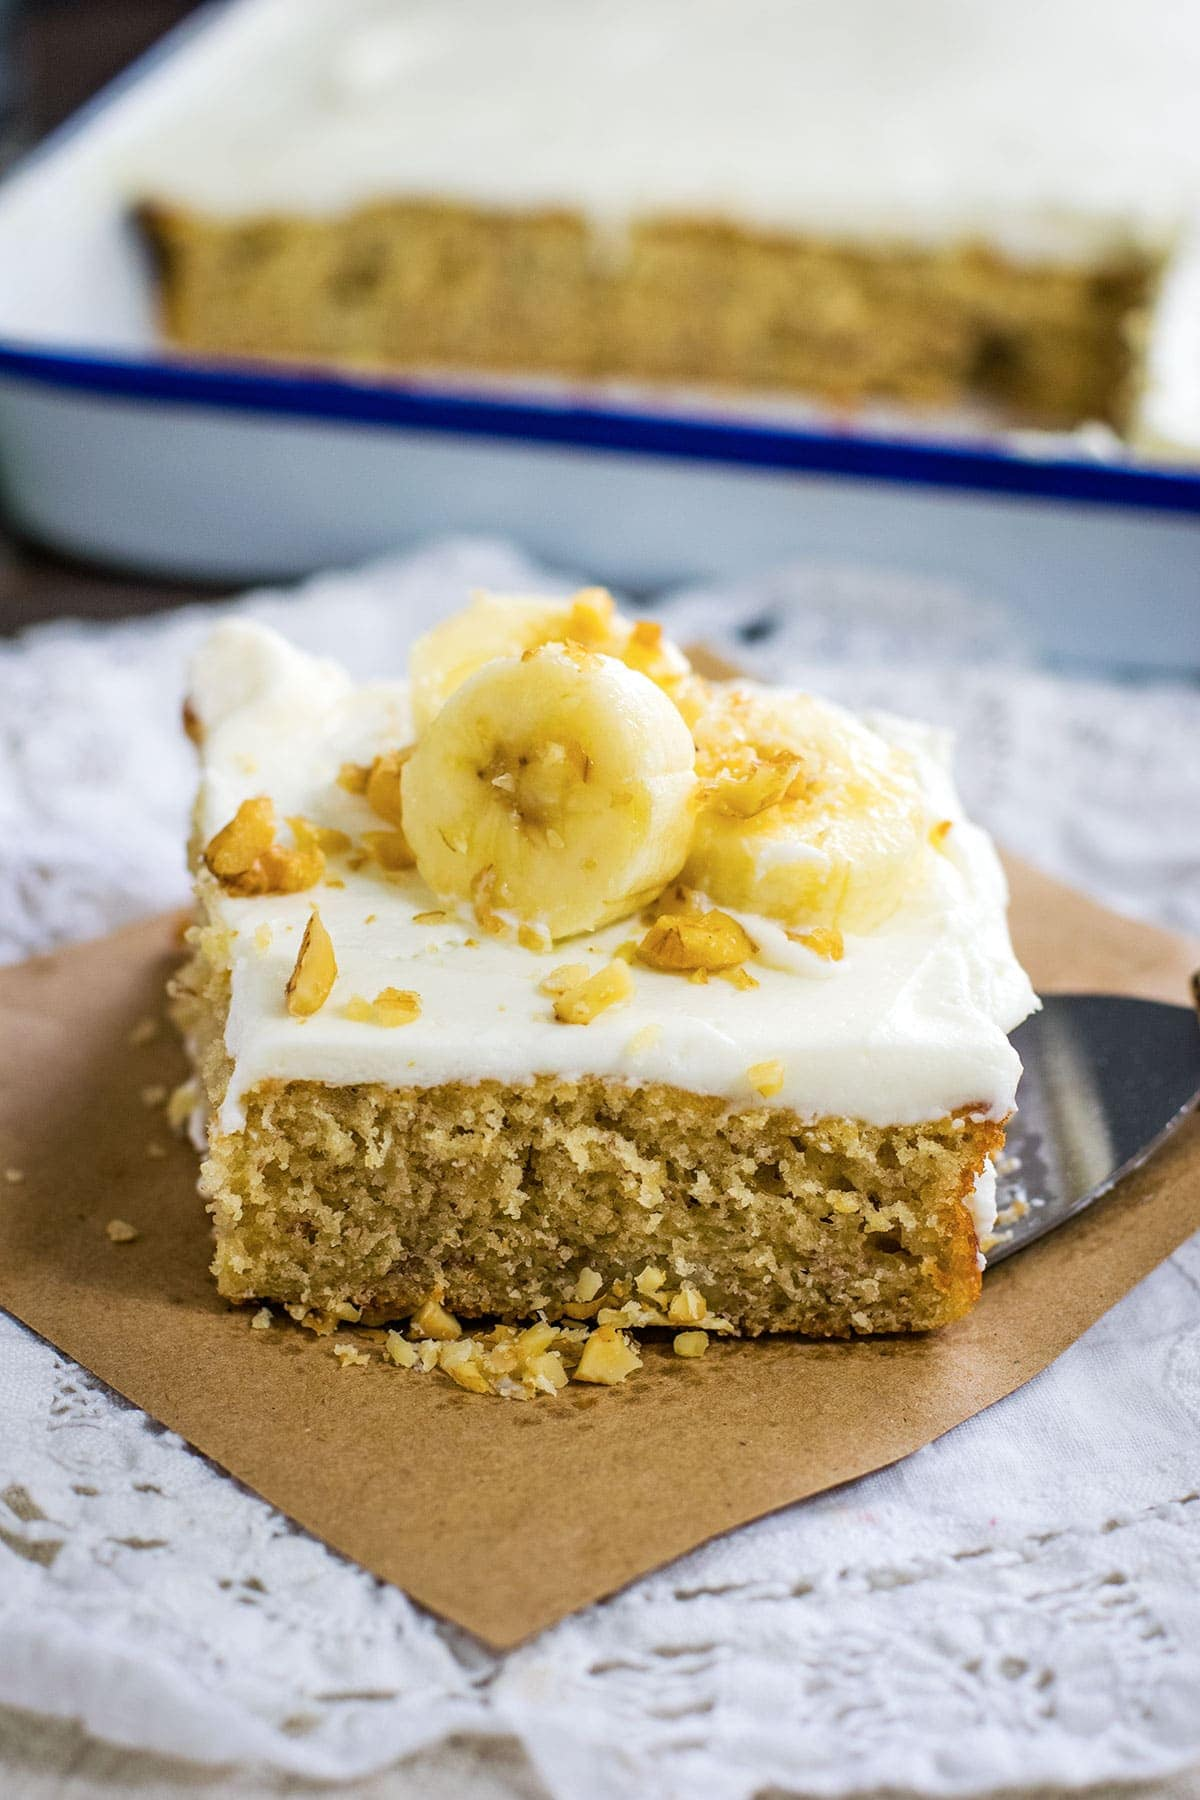 Slice of banana cake topped with bananas and walnuts